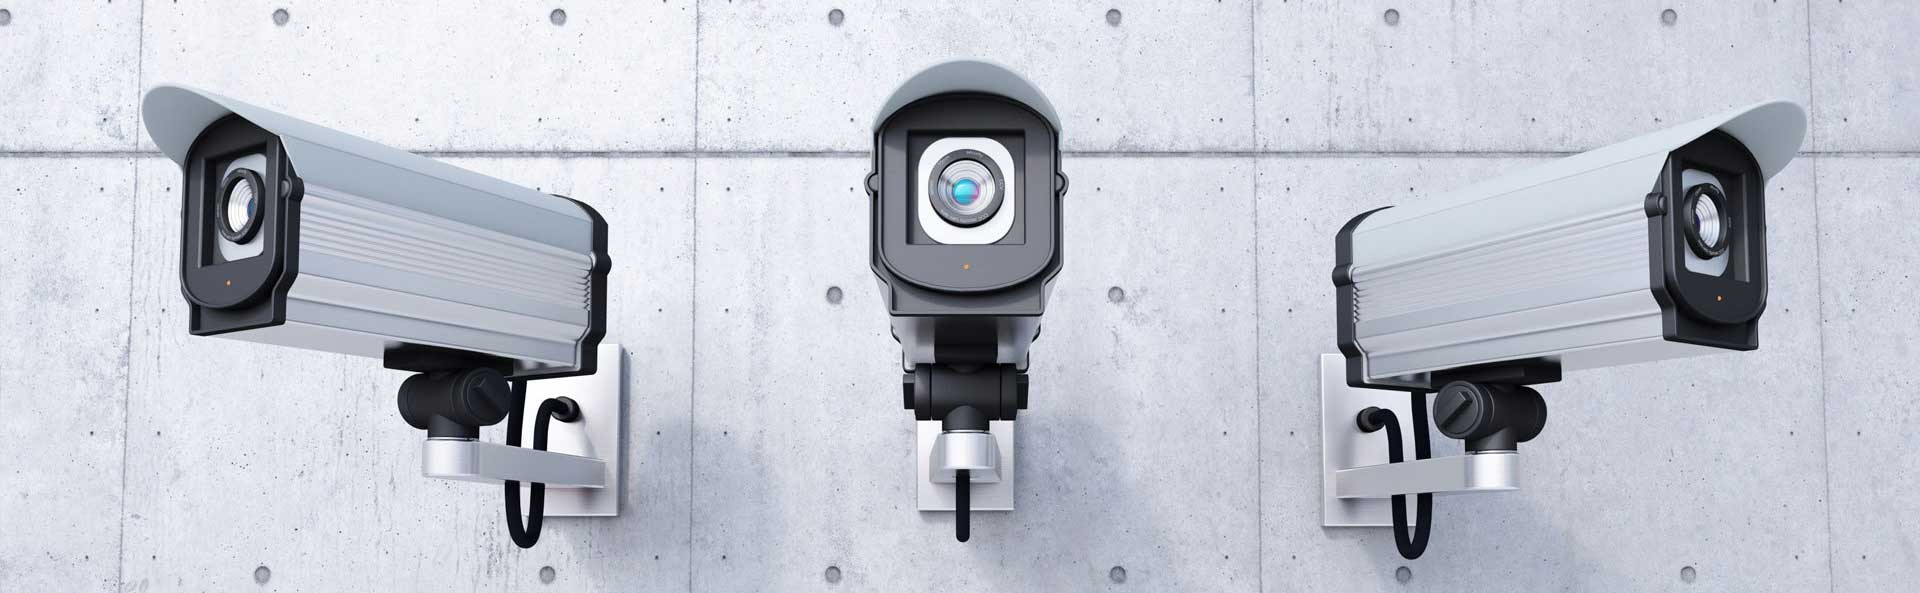 BBG security camera Clarington, Bowmanville, Newcastle